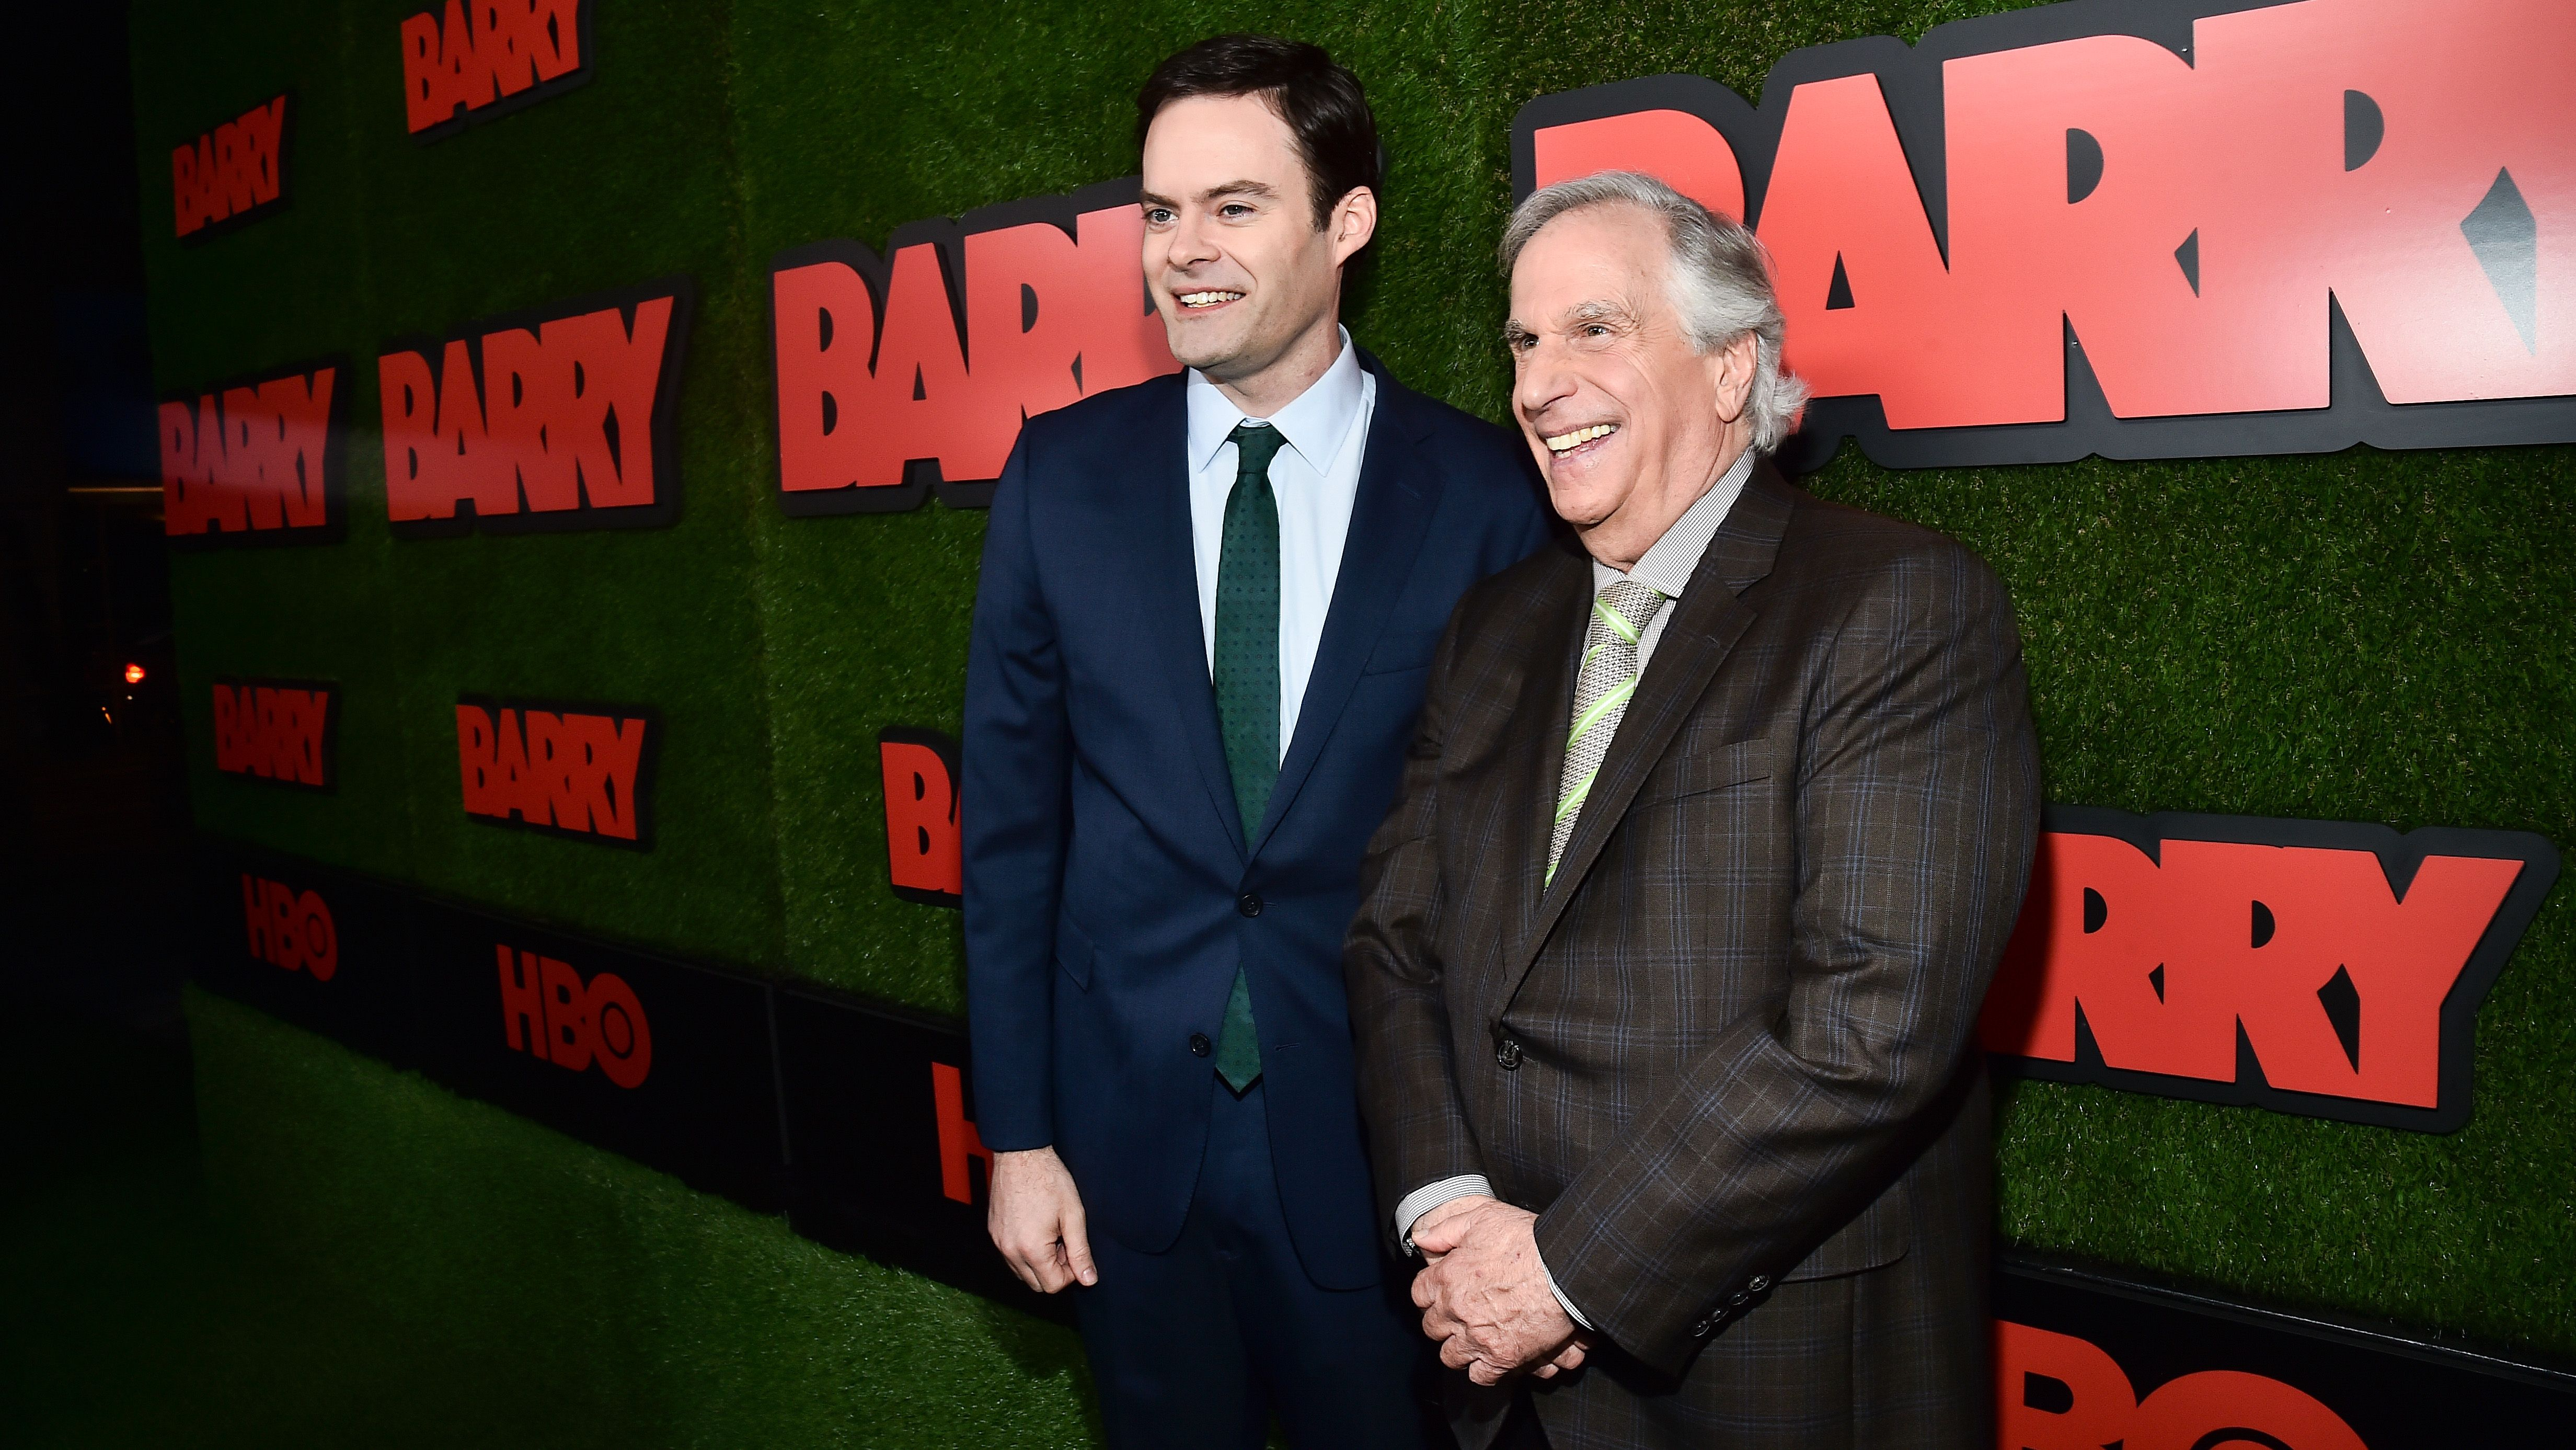 Henry Winkler on Bill Hader: The 'Barry' Star Is 'Wound Tight, Completely Open' and 'Instantly Funny'